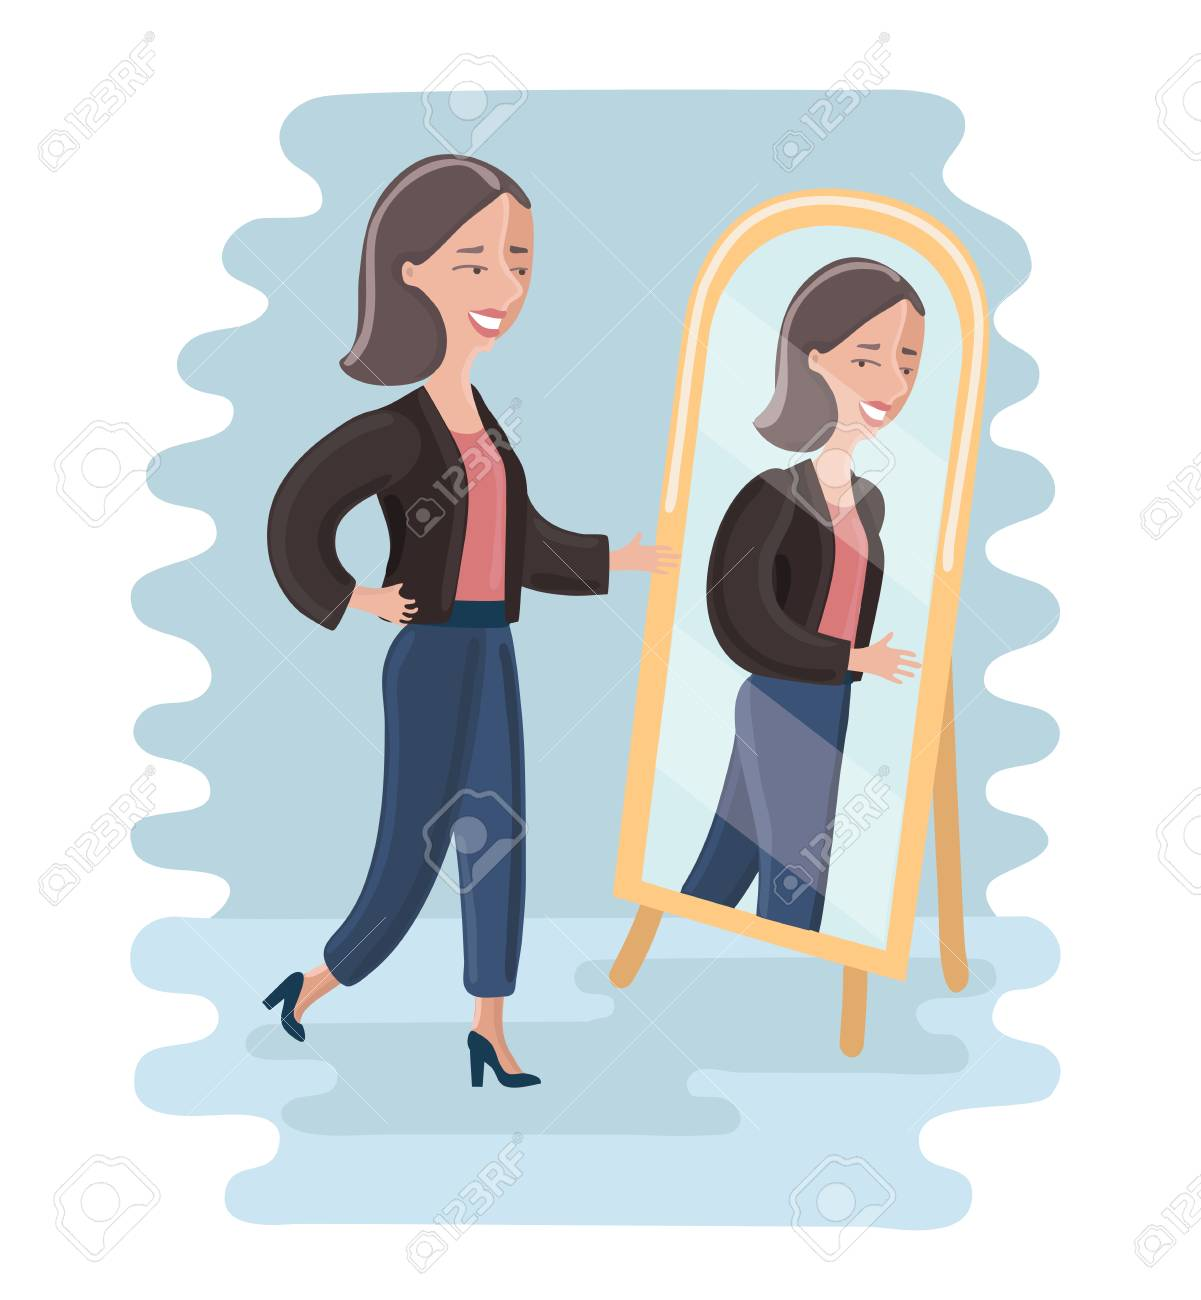 Vector Cartoon Illustration Of Young Woman Looking At Herself In A Mirror Dressing Room